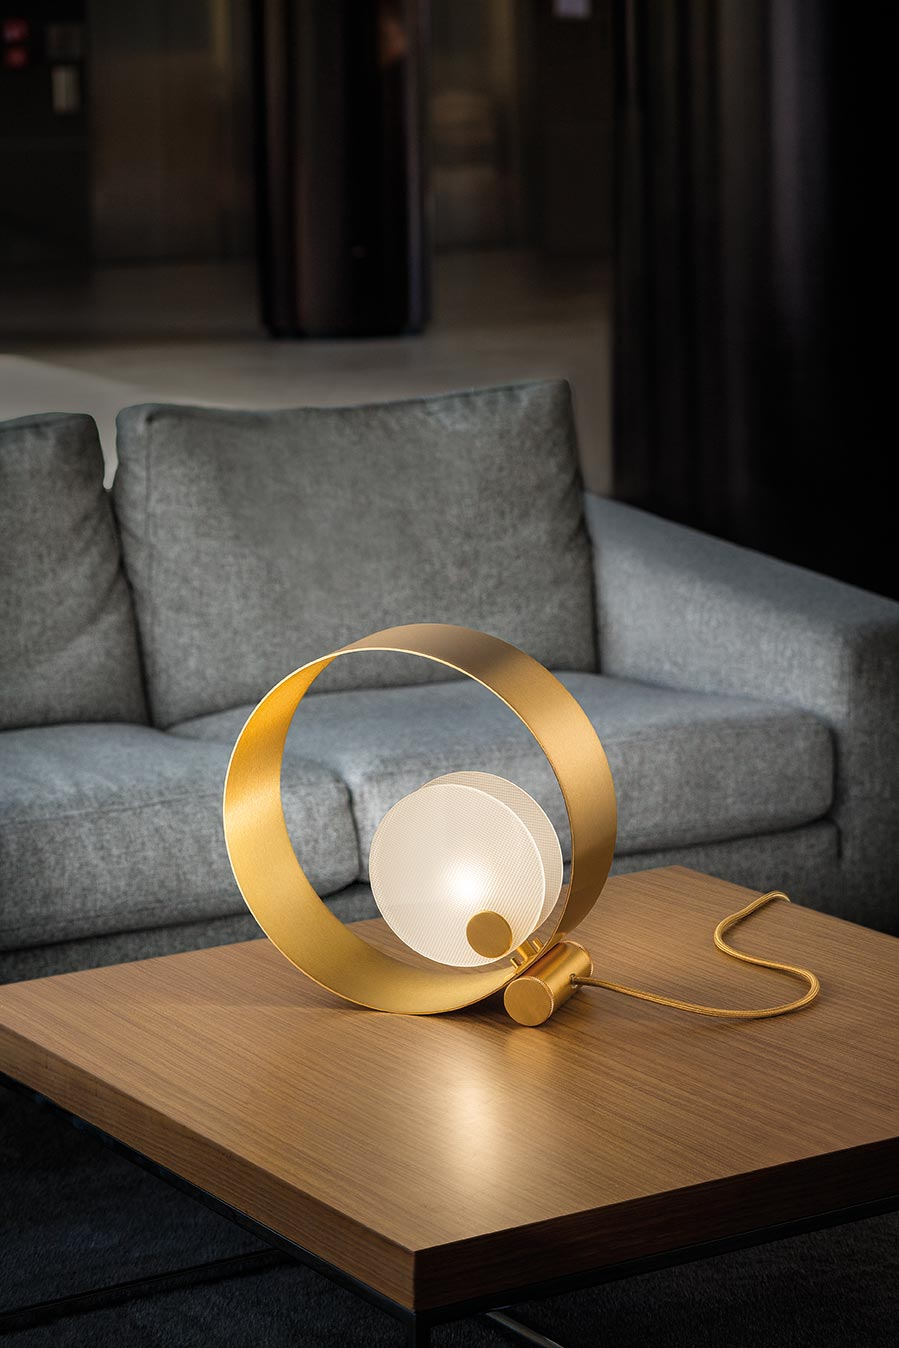 Sound Round Table Lamp Masiero Murano And Crystal Chandeliers Lamps And Wall Lights Ref 20010058